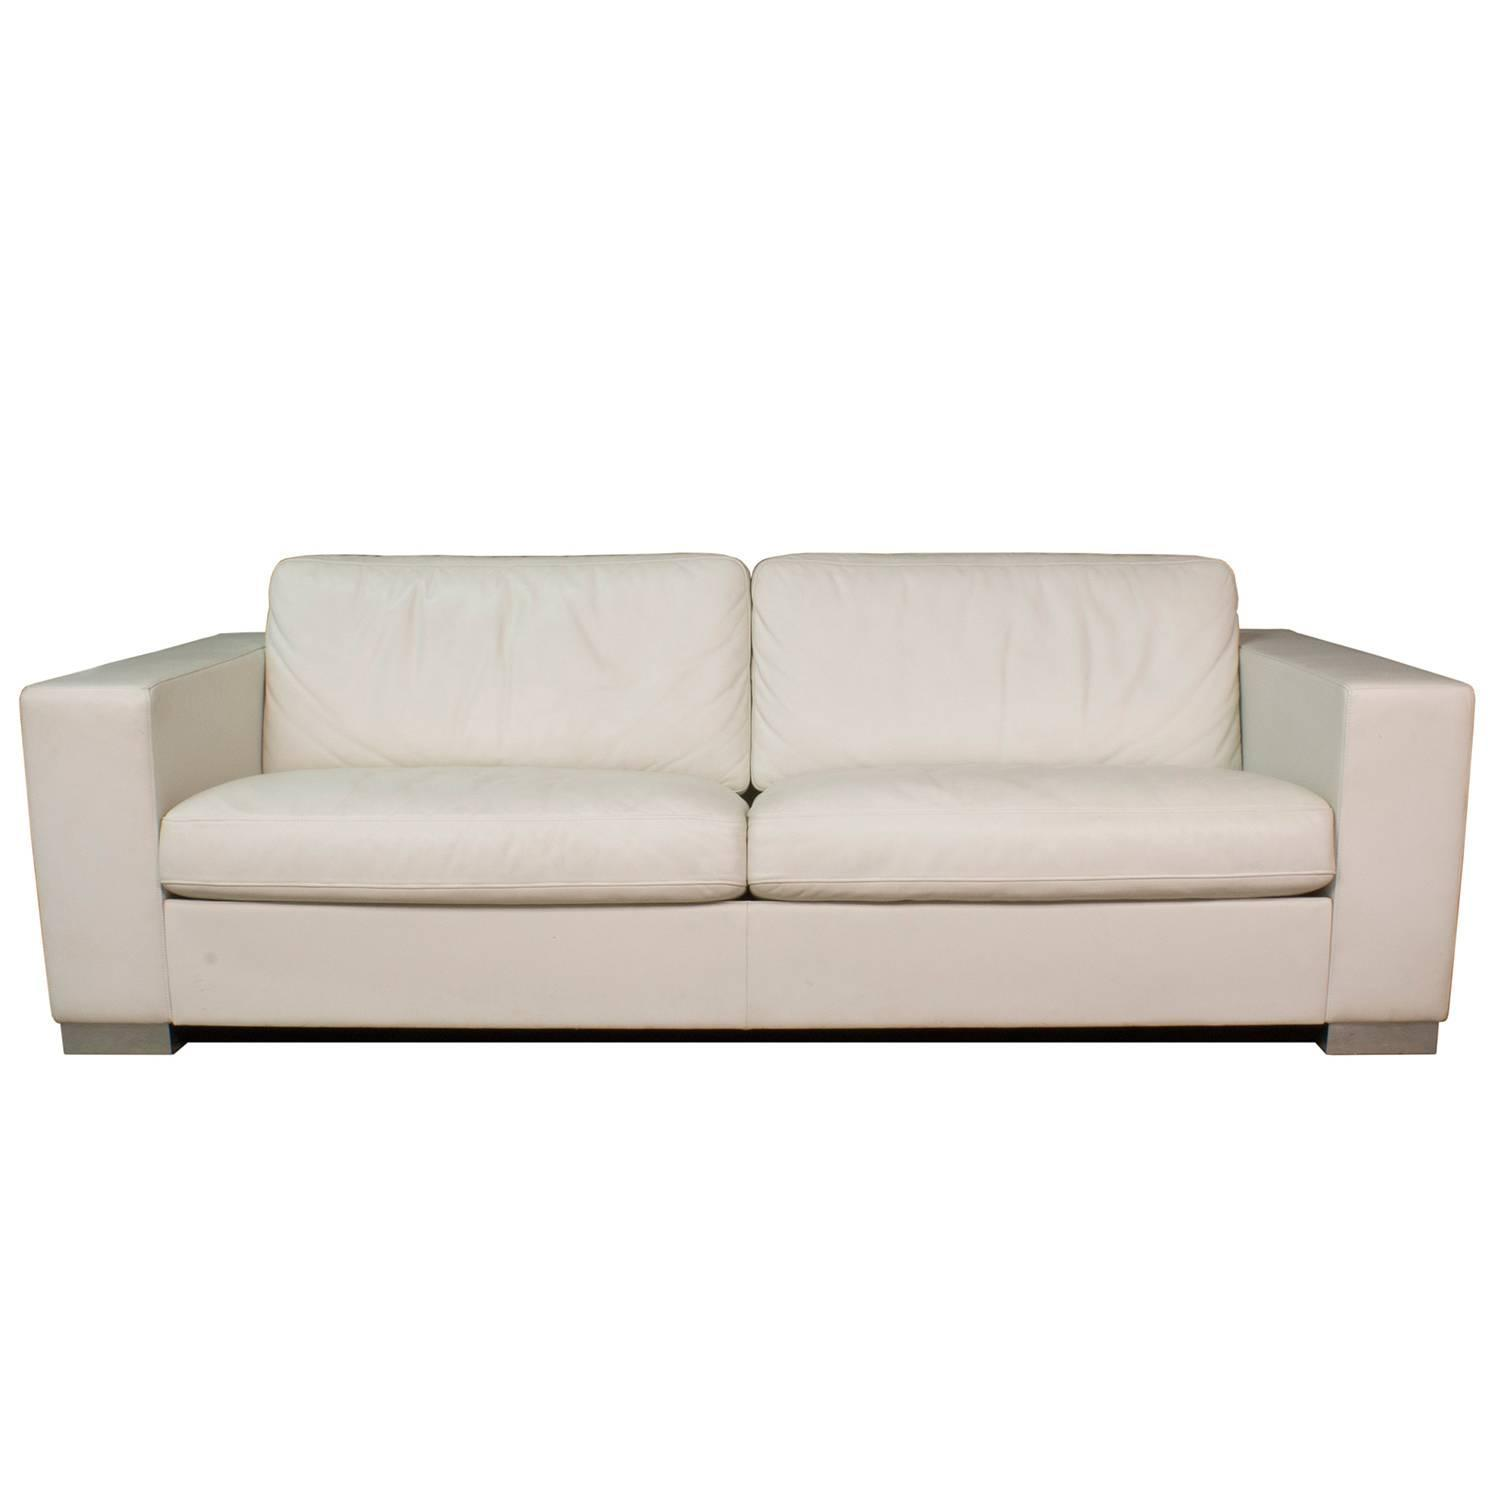 Leather Massimo Two Seat Sofa by Poltrona Frau Italy For Sale at